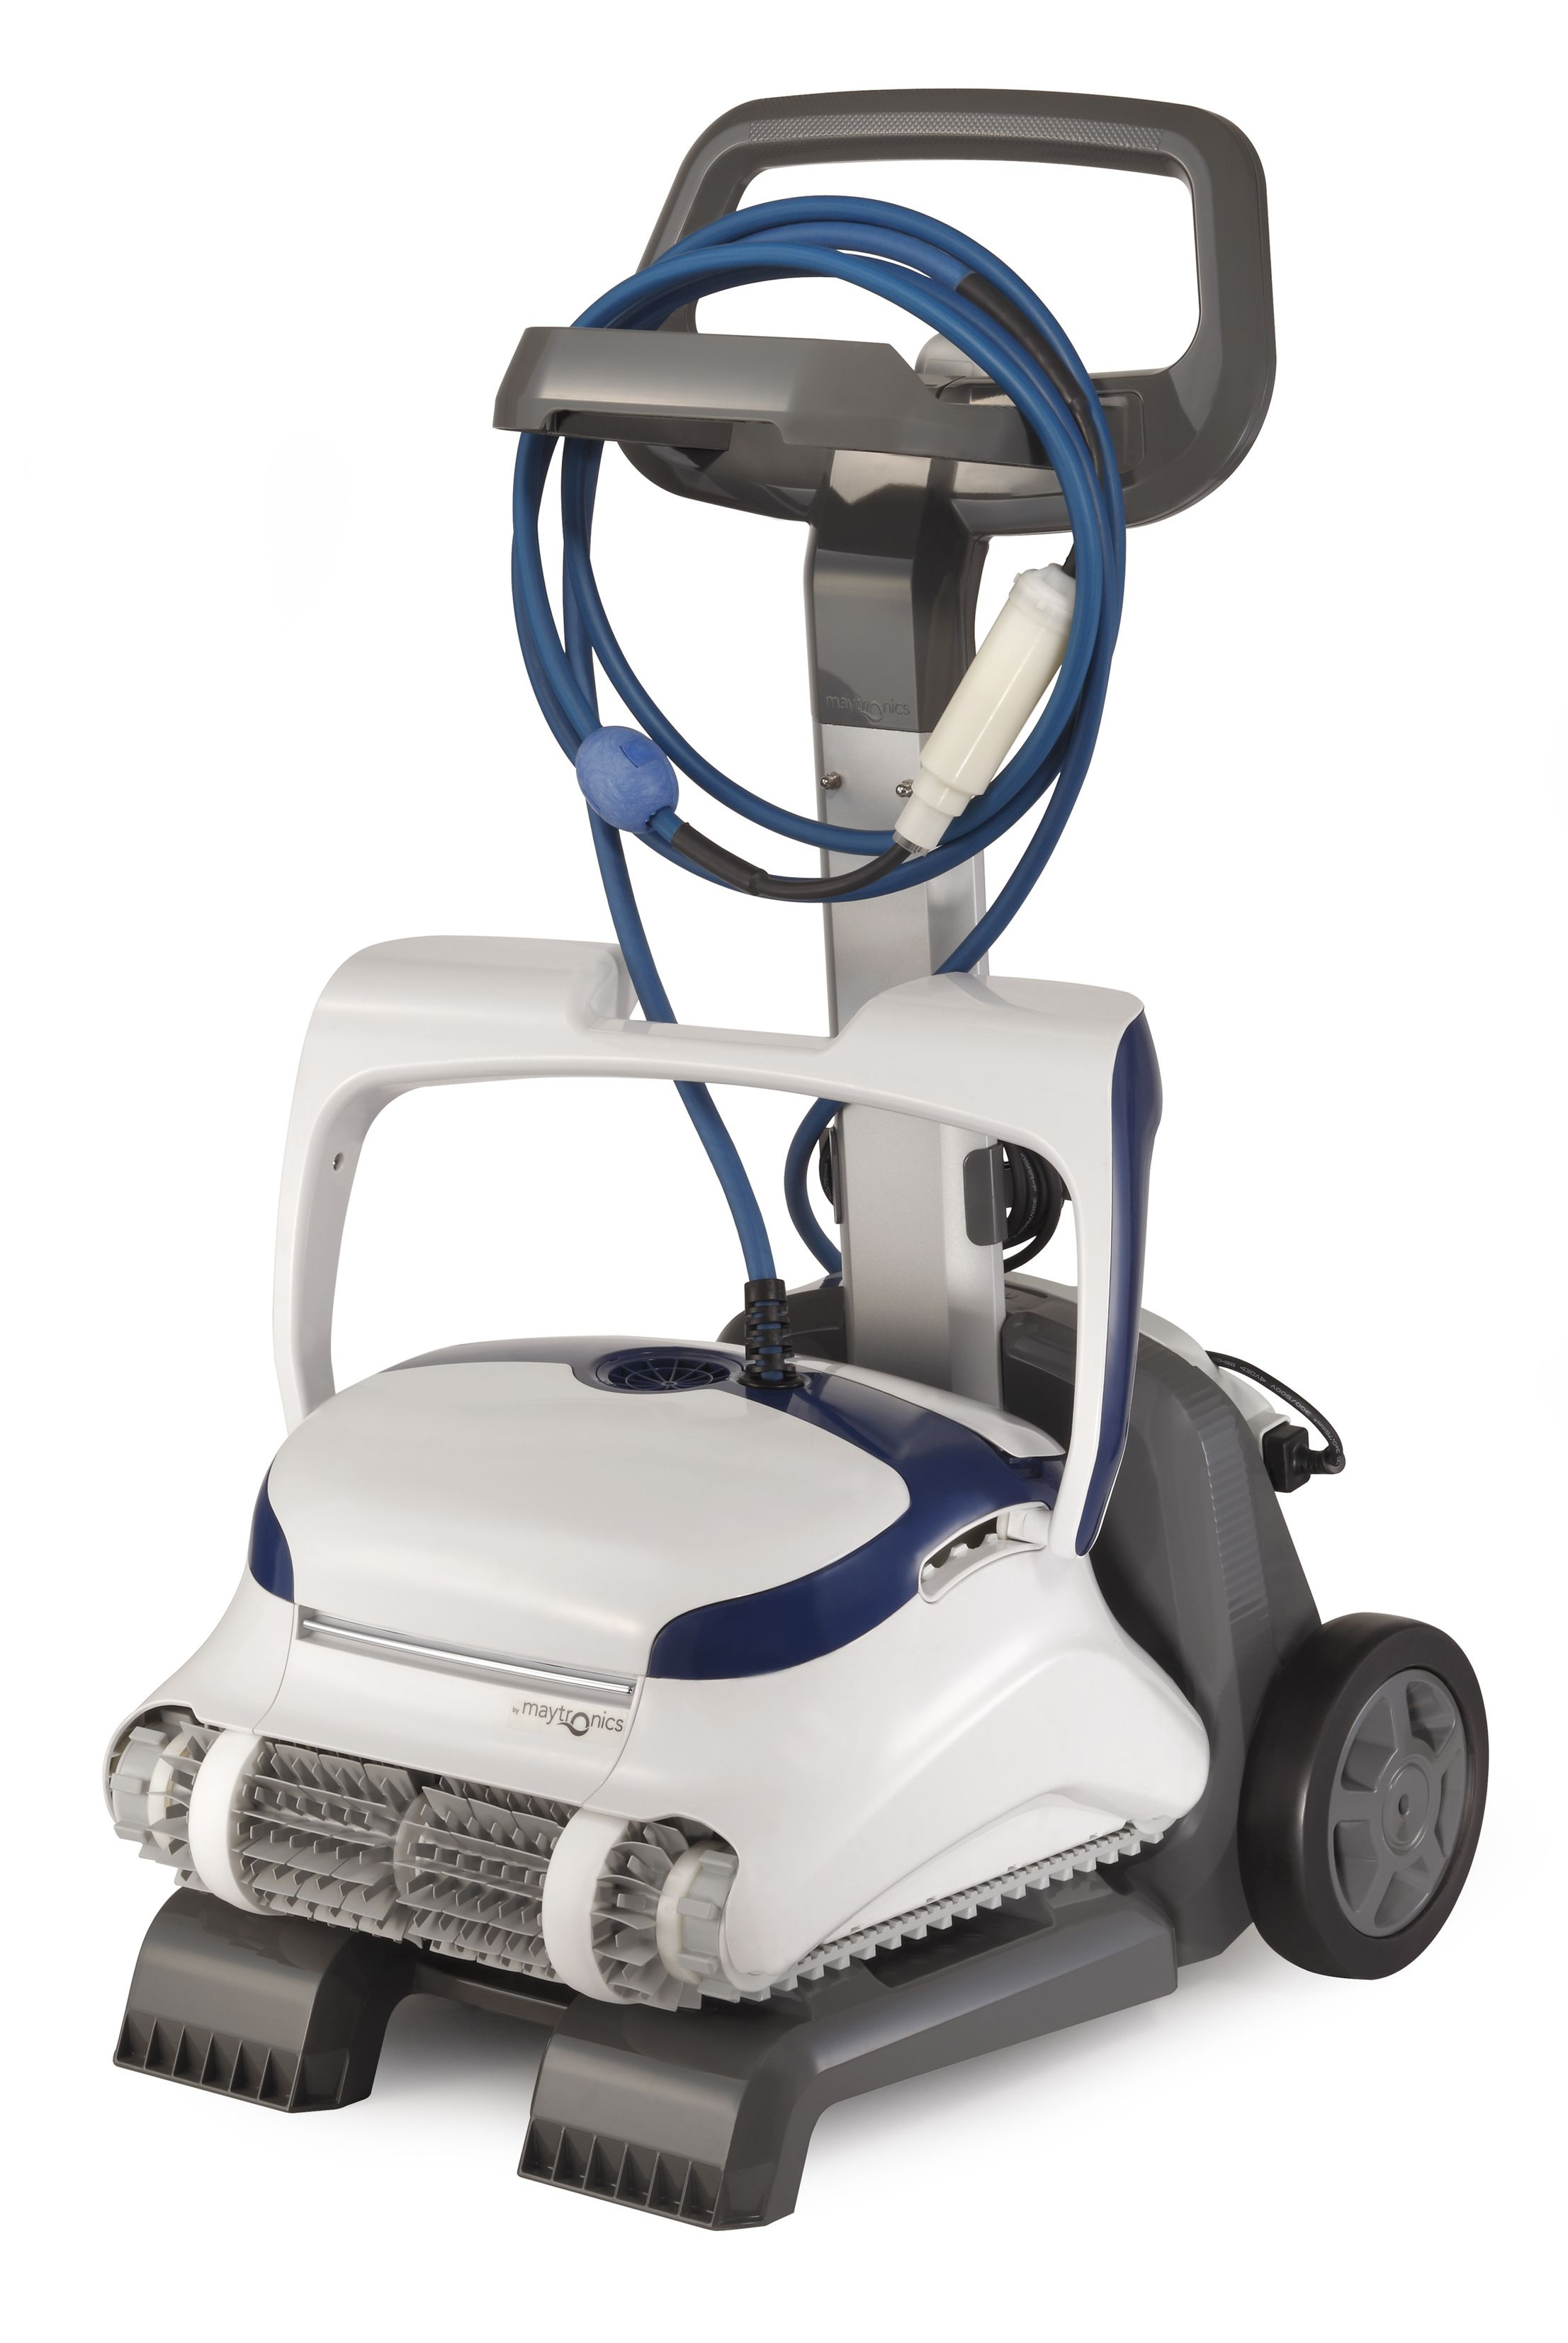 Dolphin Pool Cleaner On Caddy Dolphin Pool Cleaner In 2019